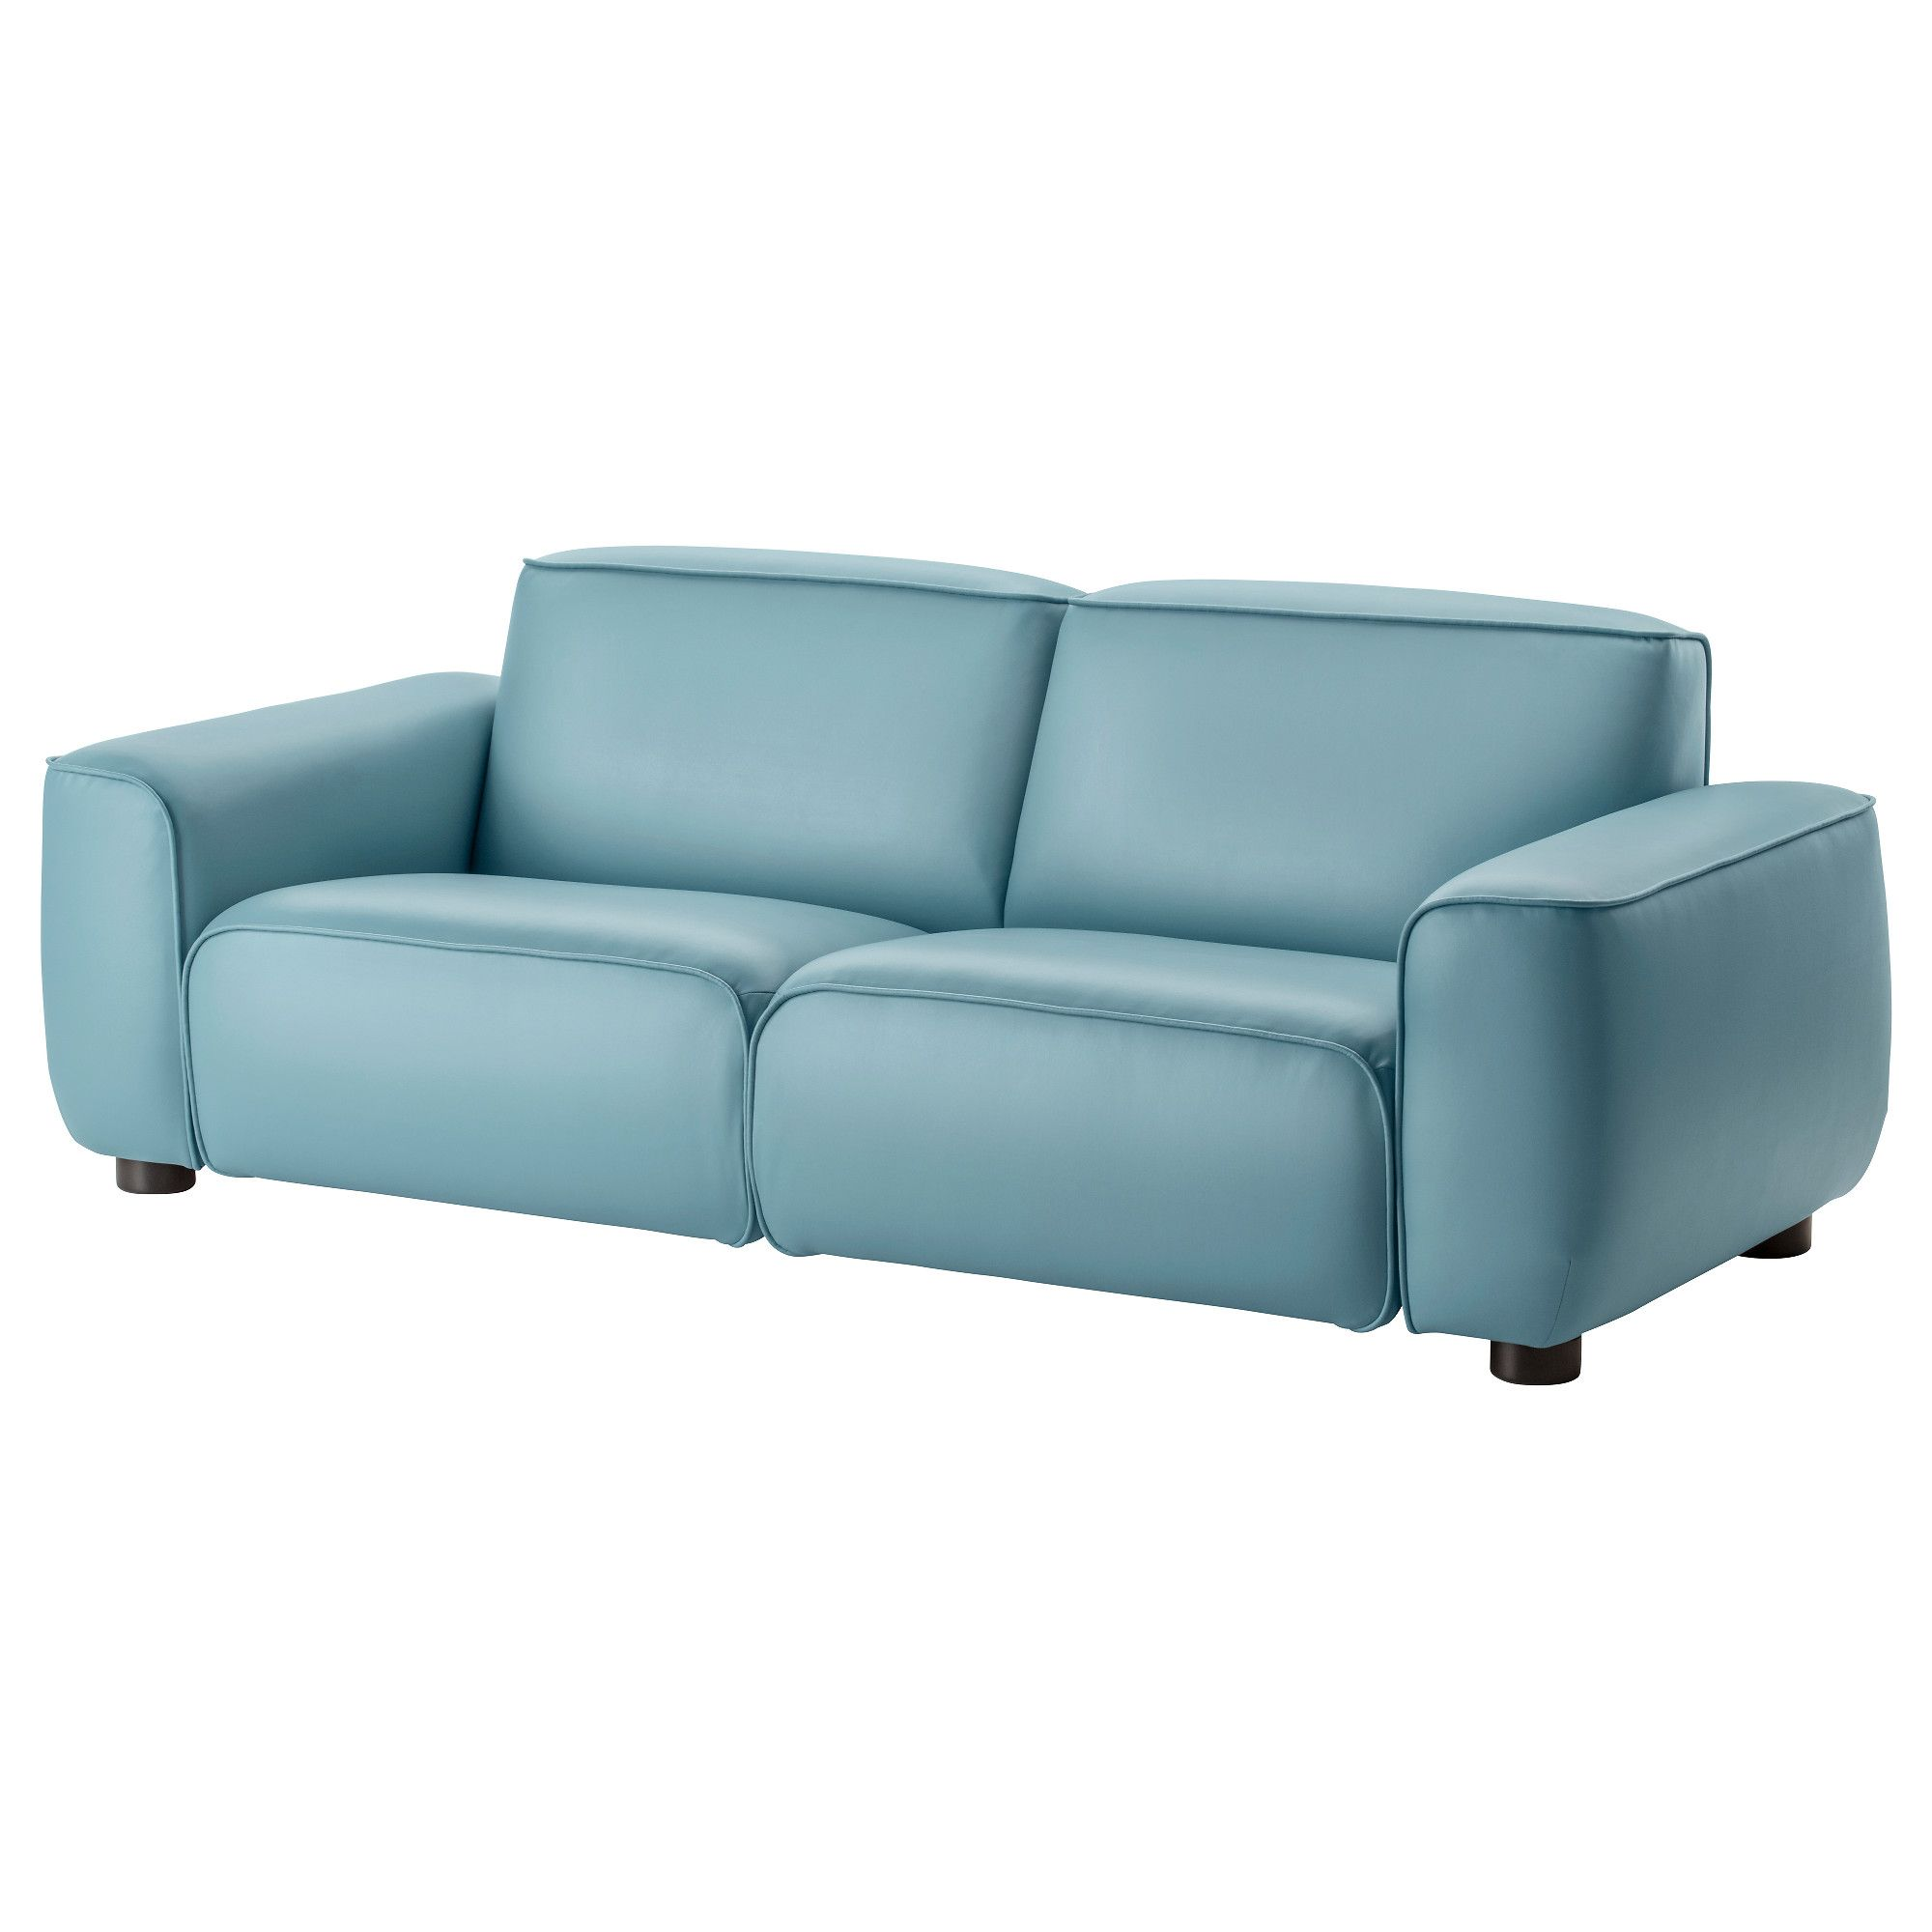 Natuzzi Sofa Harveys Ikea Dagarn Sofa Kimstad Turquoise Durable Coated Fabric